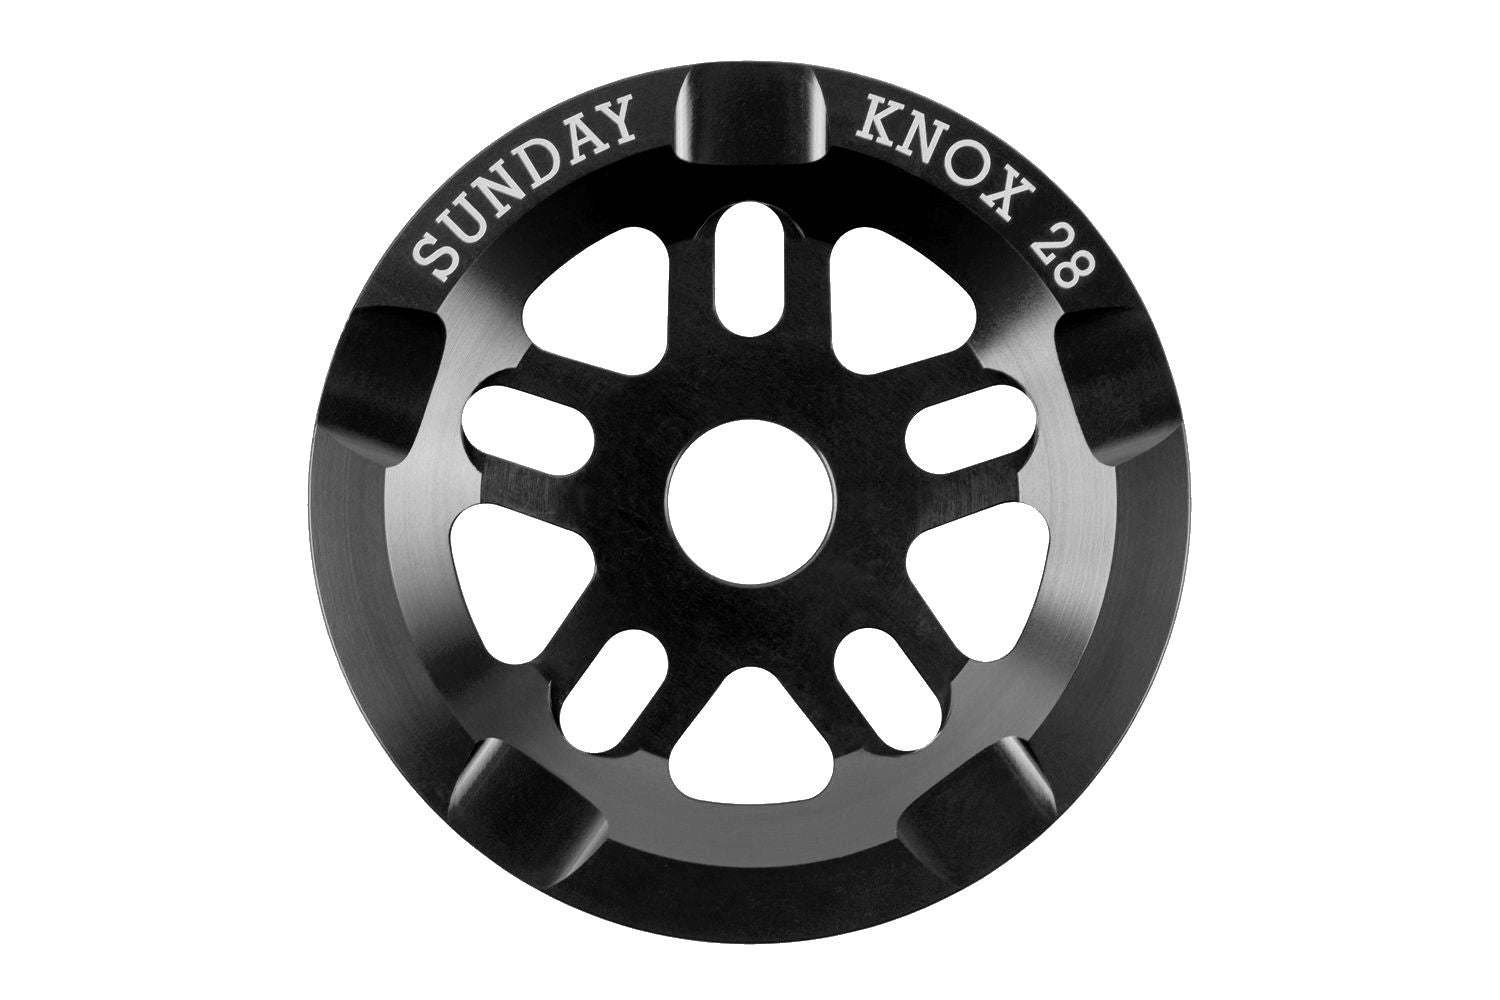 Sunday 28t Knox V2 Guard Sprocket / Chainwheel - Black